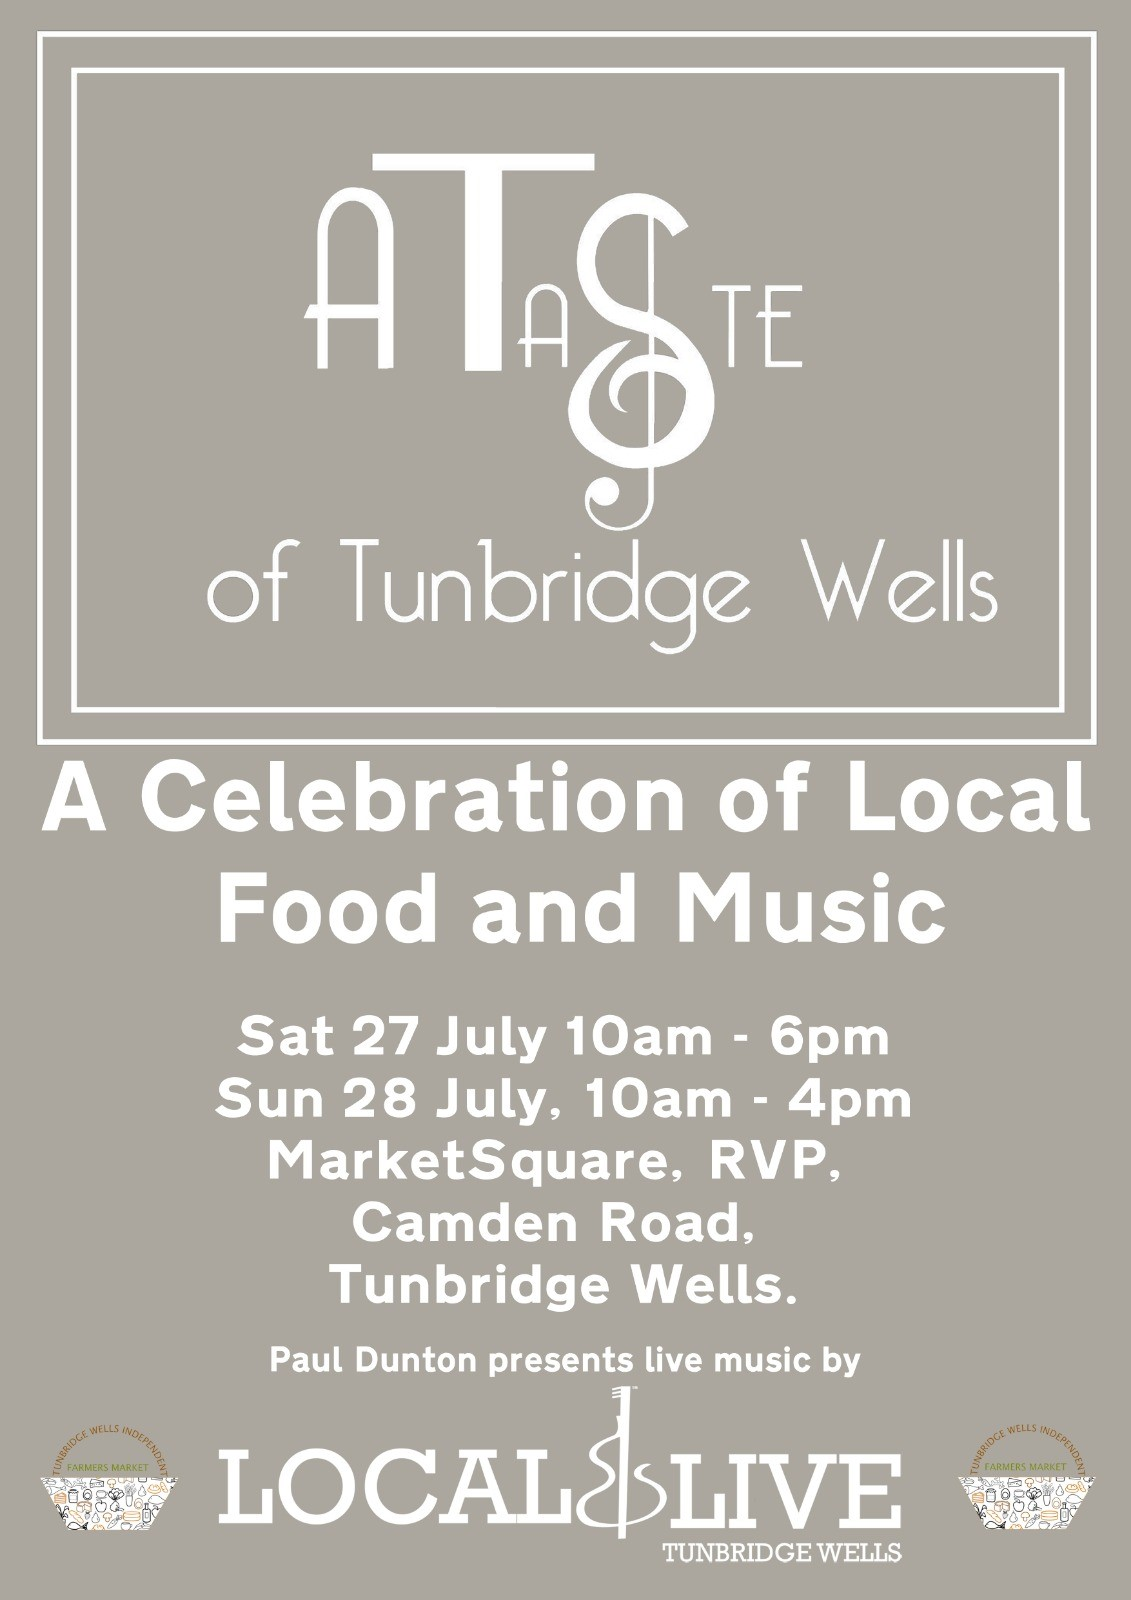 A Taste of Tunbridge Wells - Market Square, Royal Victoria Place, Saturday 27th (10am-6pm) and Sunday 28th July (10am-4pm)Tunbridge Wells Independent Farmers' Market are hosting us as part of their top picks of local bars, pubs, cafés and restaurants. We'll be in Market Square showcasing some of our favourite beers, which we'll be pouring and selling over the weekend. There will be loads of delicious food available, as well as a Local & Live stage!